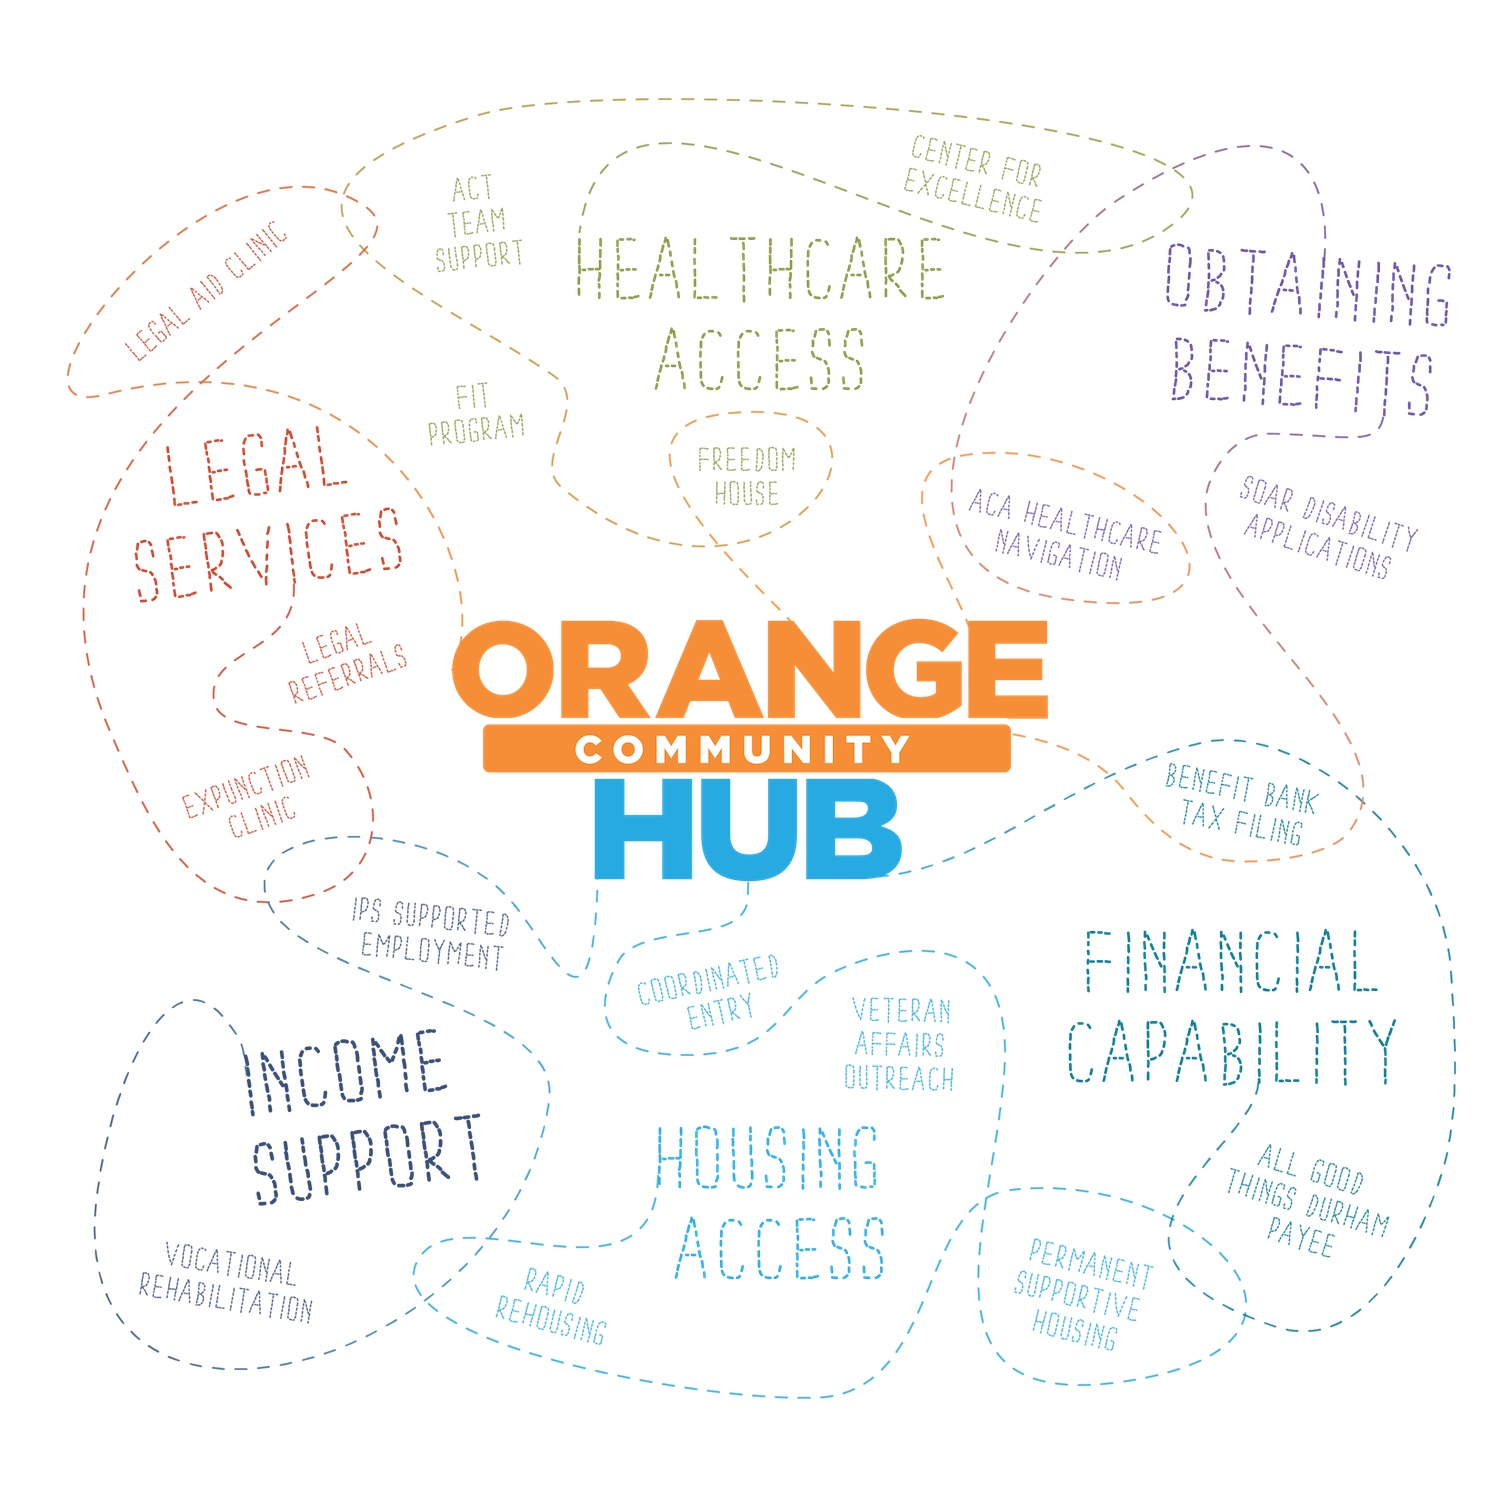 hight resolution of  housing financial literacy and health access by providing support for the whole person in a comfortable setting that reduces barriers